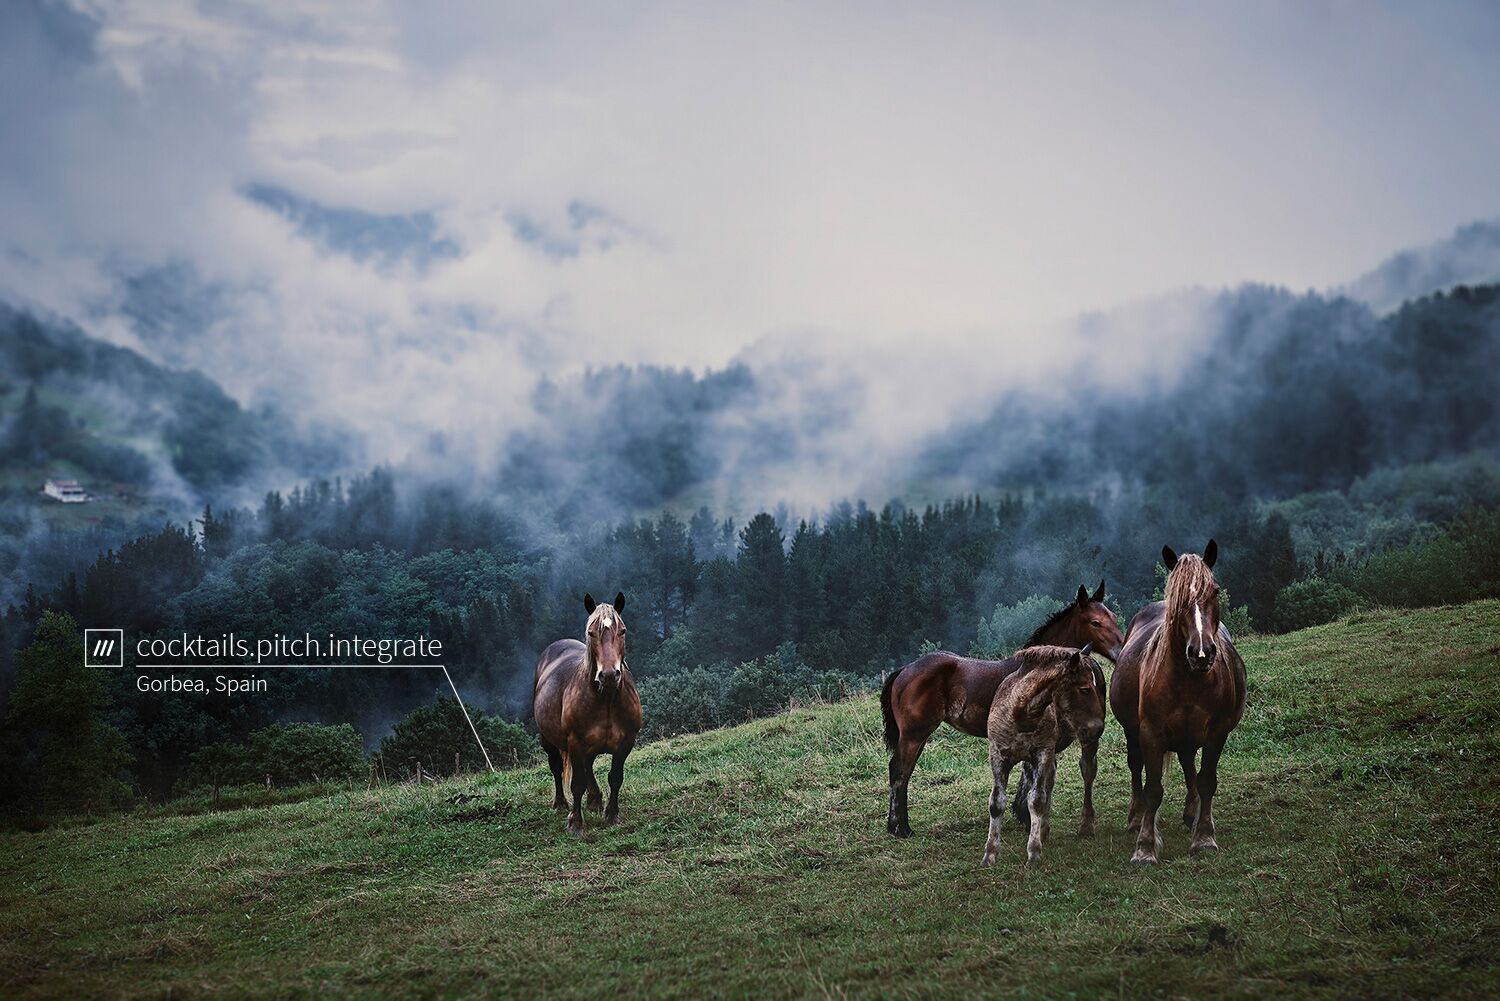 wild horses in a field surrounded by forests